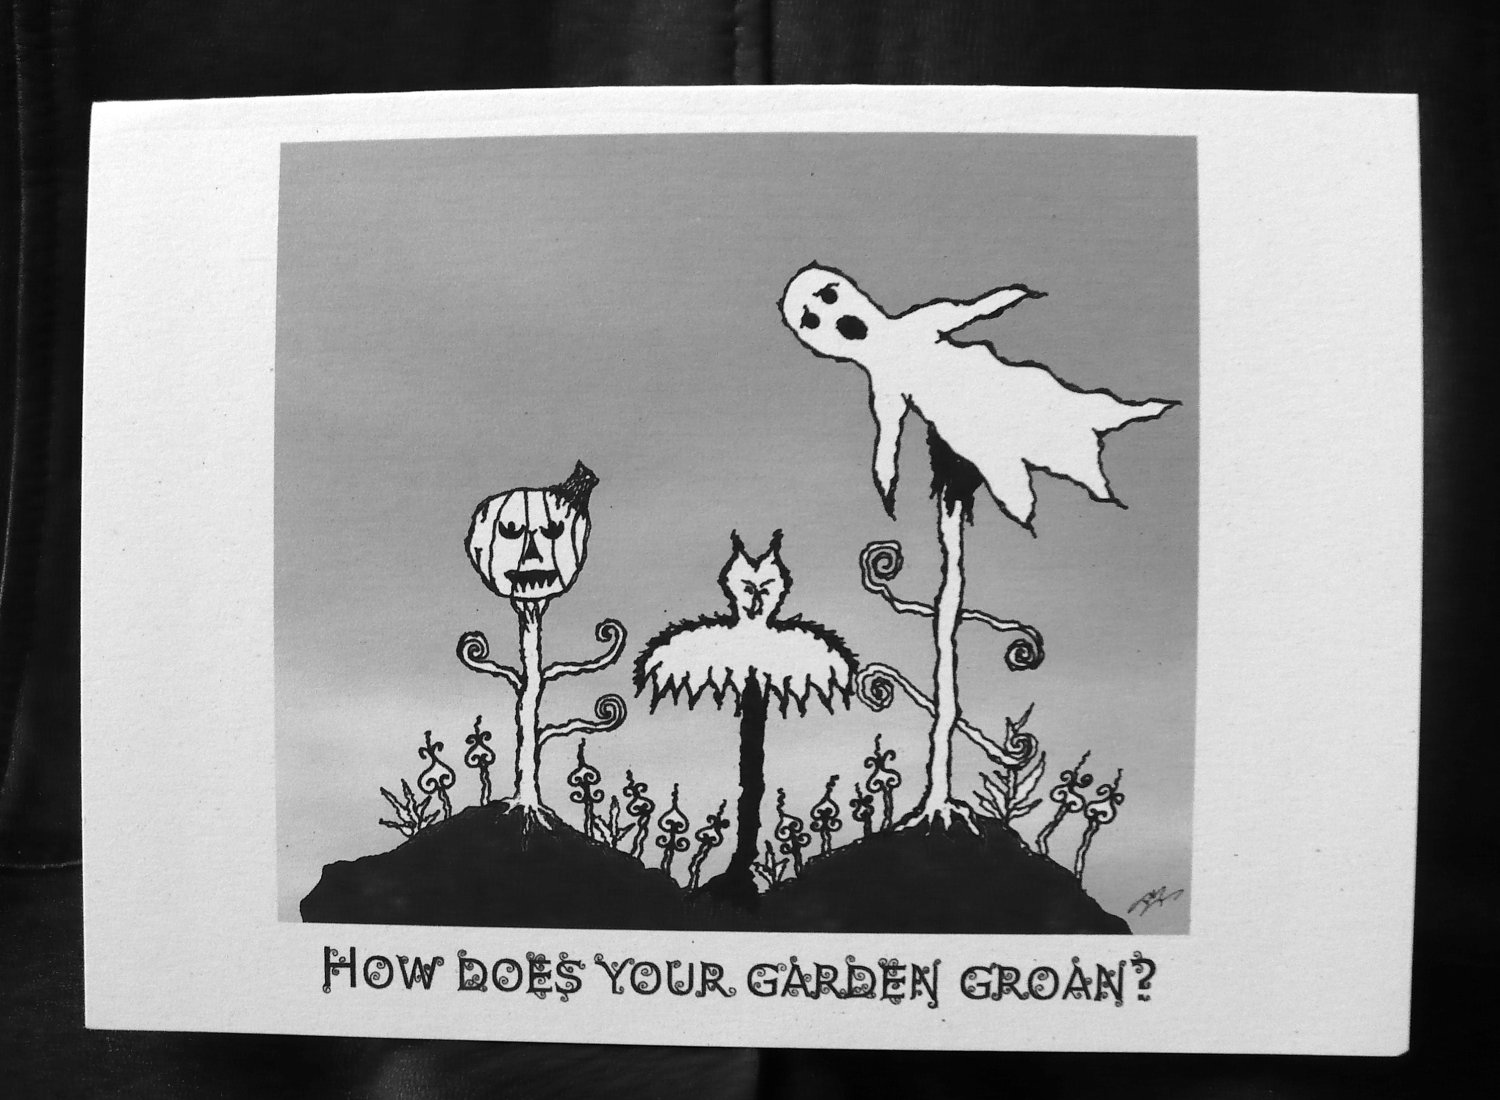 How Does Your Garden Groan